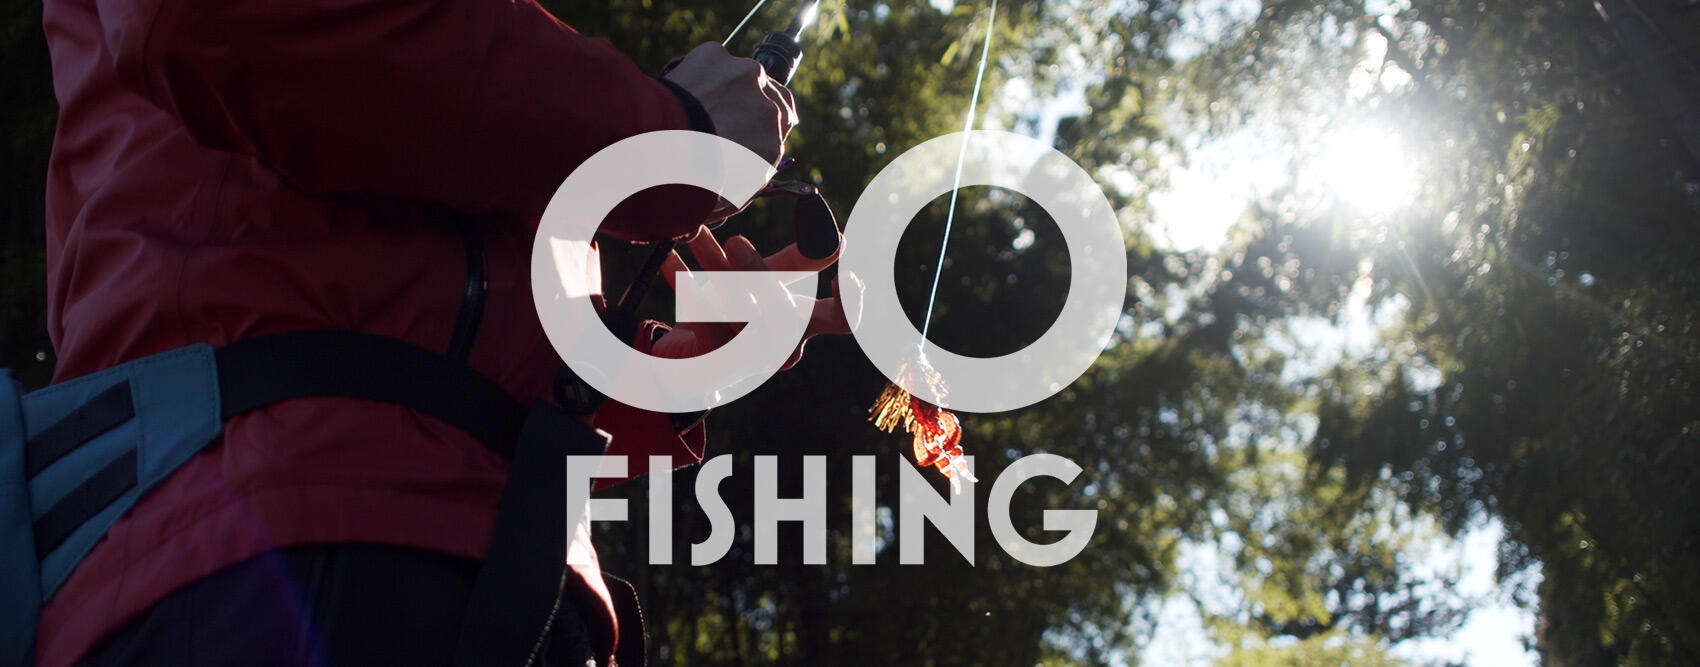 go_fishing_Ber